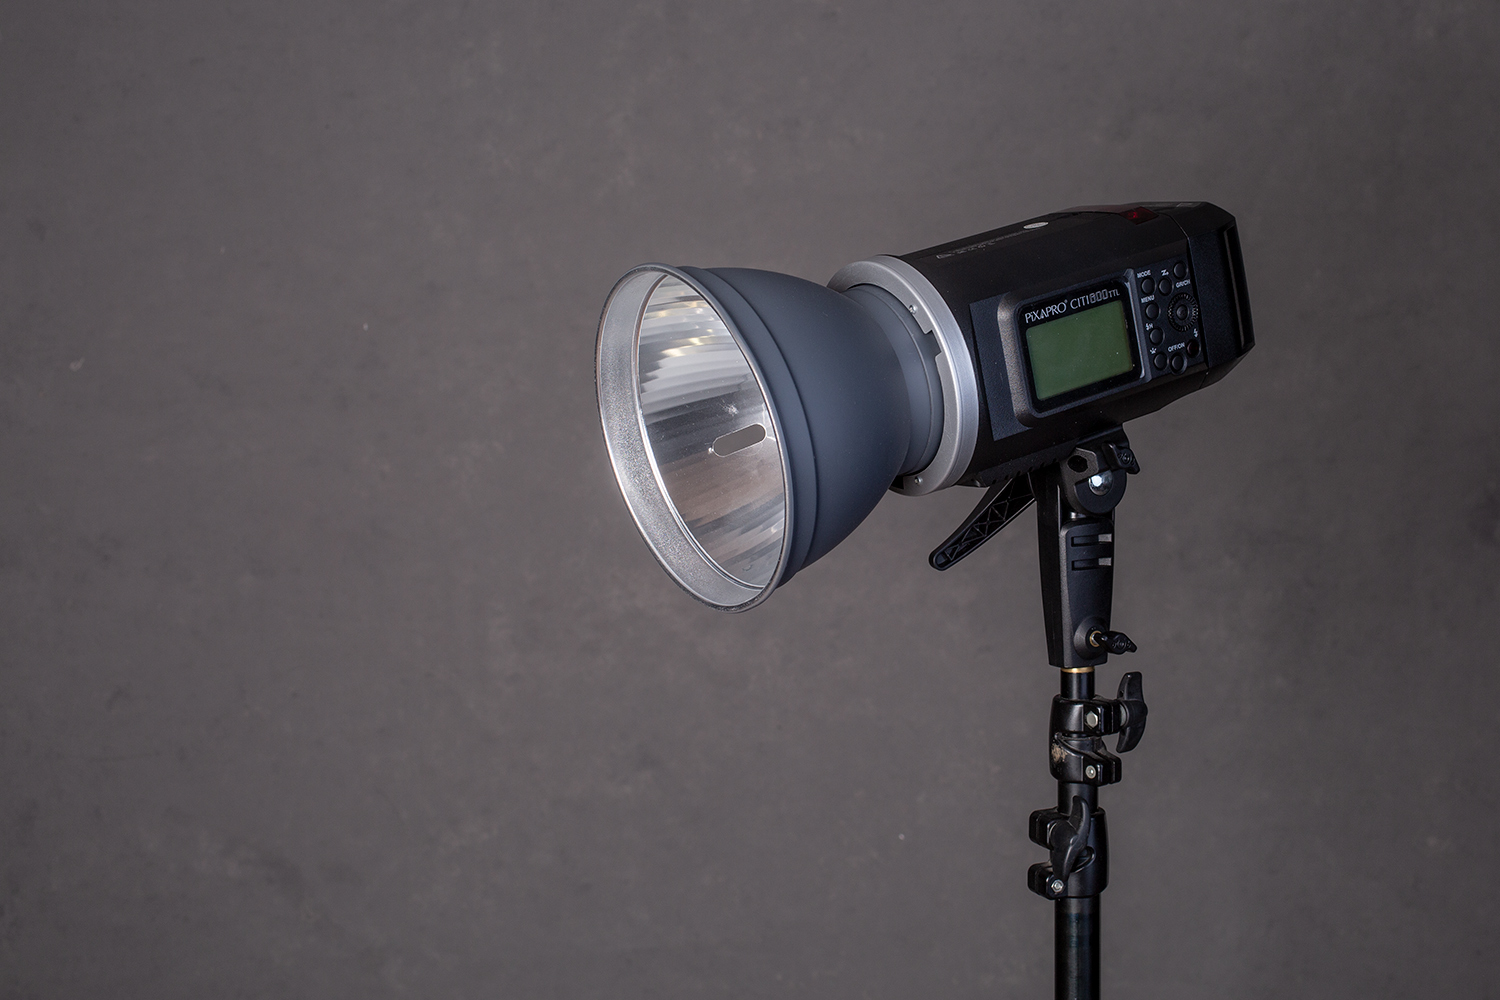 https://i1.wp.com/digital-photography-school.com/wp-content/uploads/2019/05/the-language-of-studio-lighting-strobe-1235.jpg?resize=1500%2C1000&ssl=1